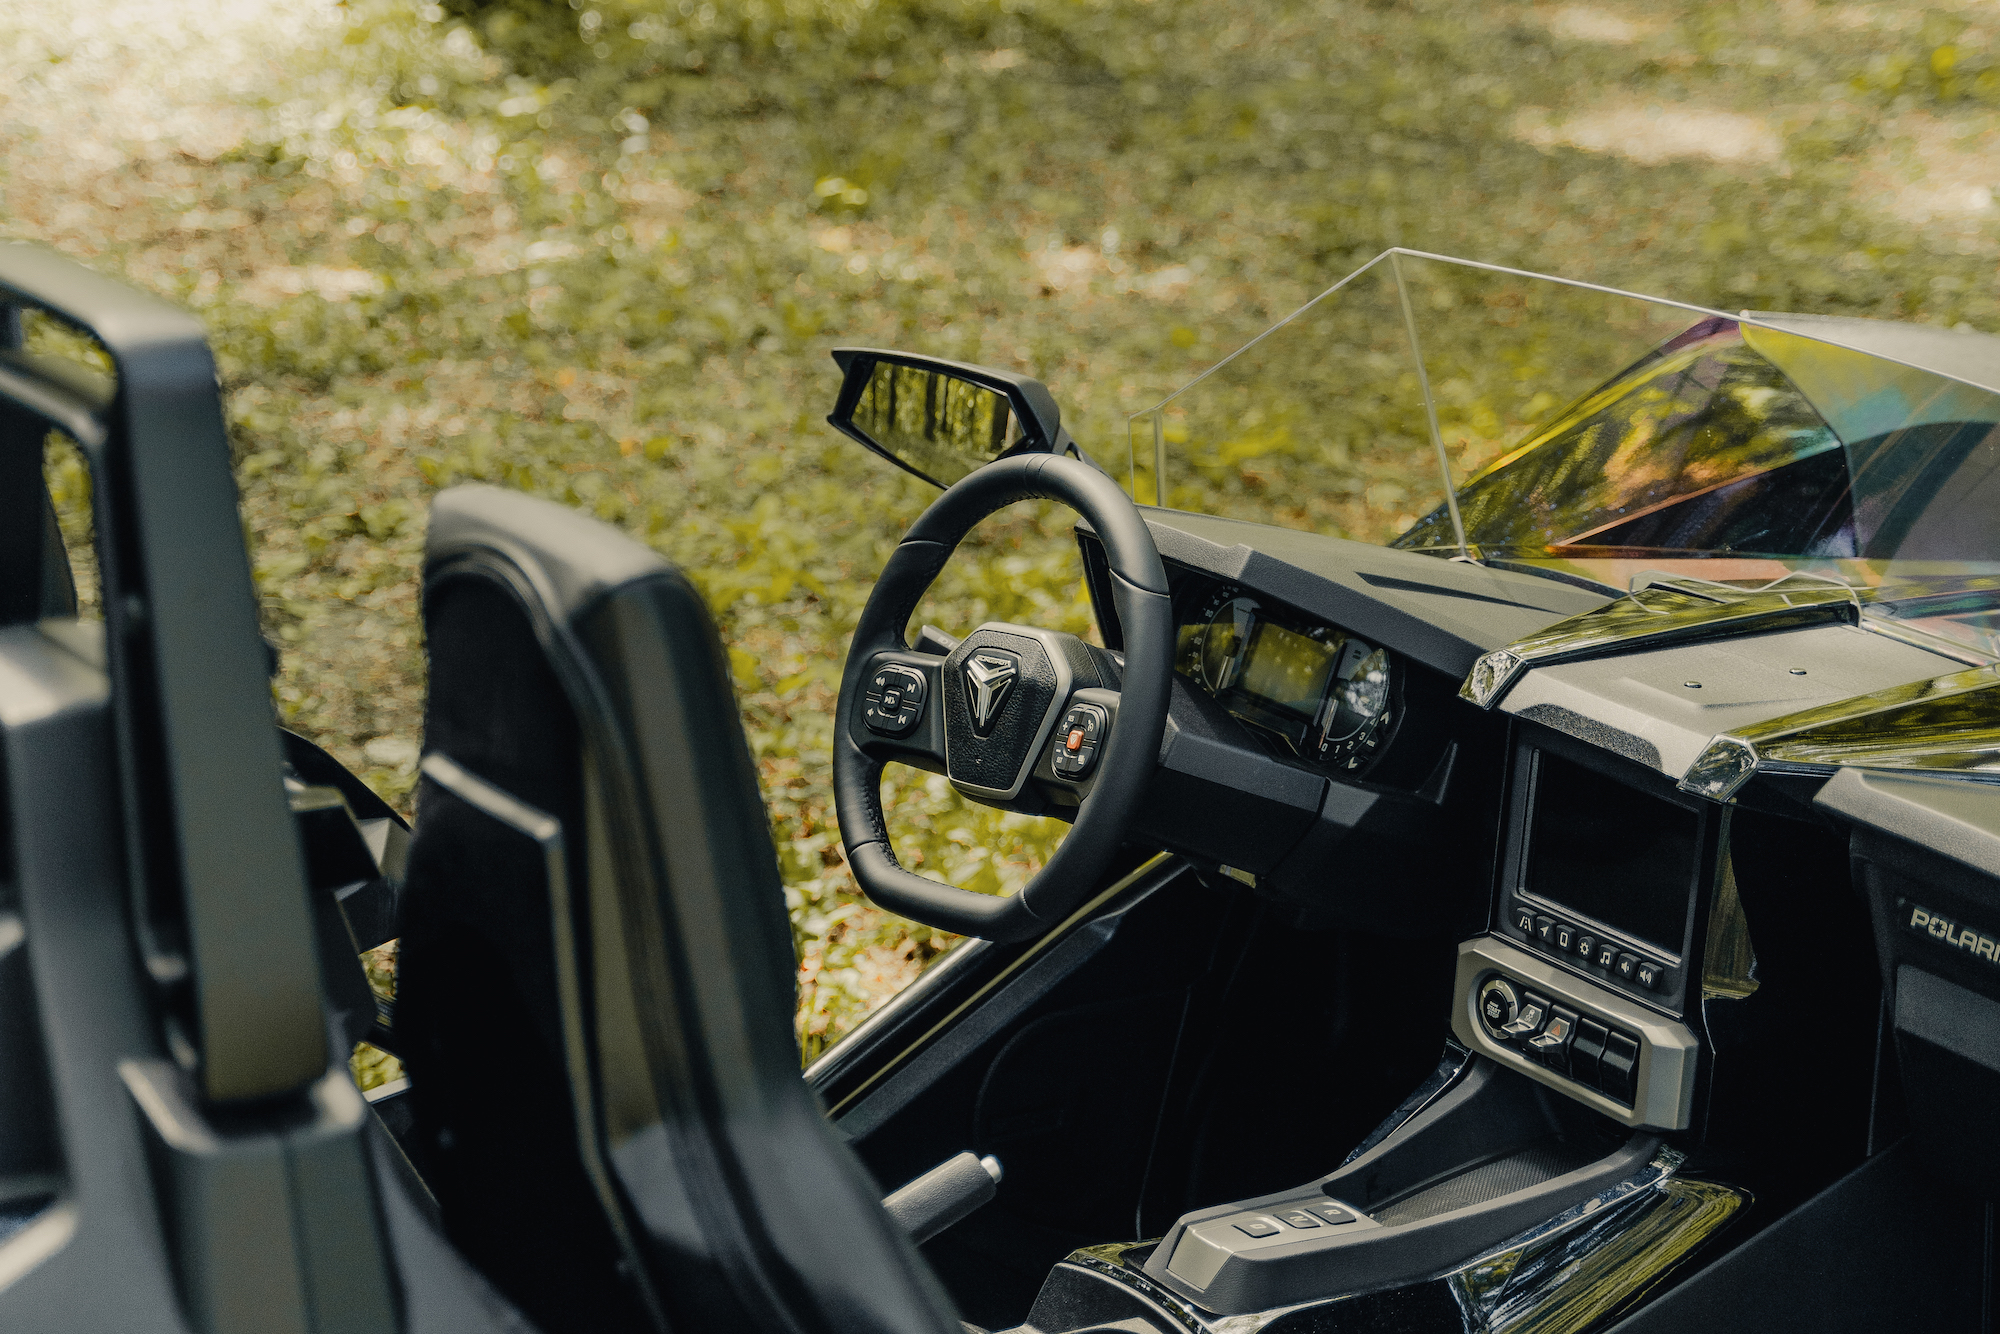 cockpit of the Polaris Slingshot - Polaris Slingshots are available as rentals at the Mountain Mile Mall at Mountain Mile Adventures in Pigeon Forge, Tennessee